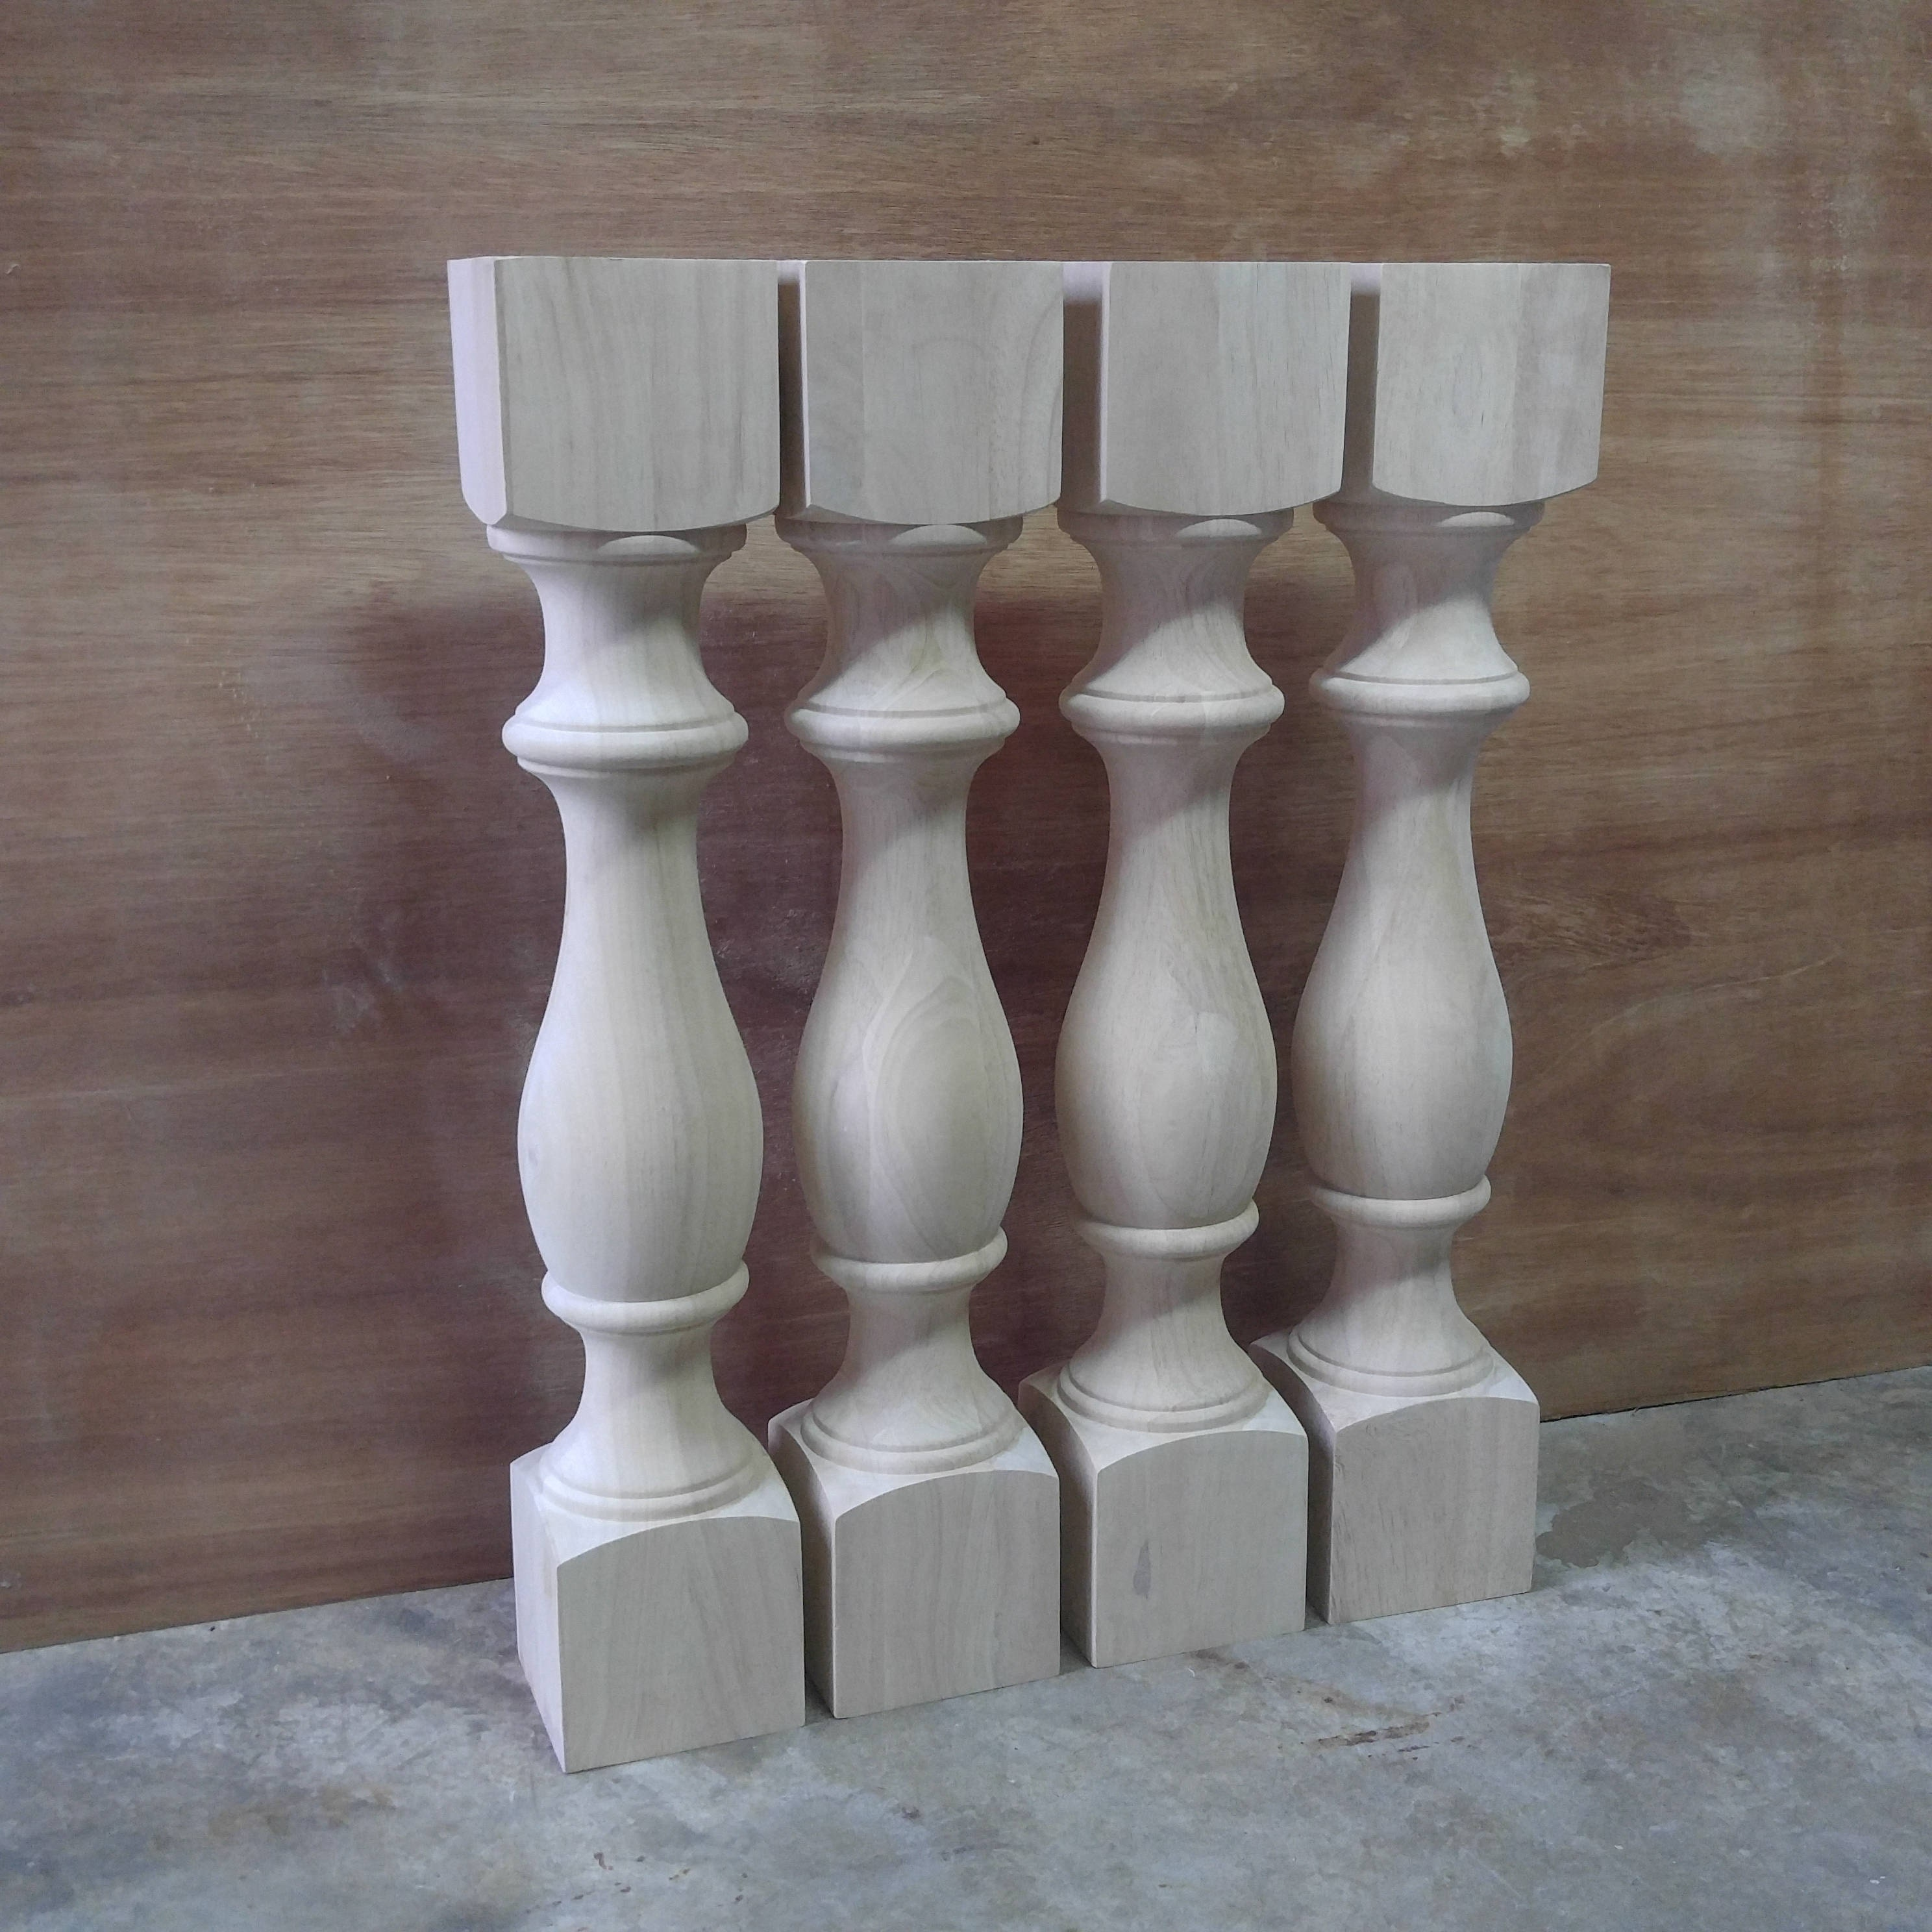 Unfinished Monastery Dining Table Legs Console Table Legs